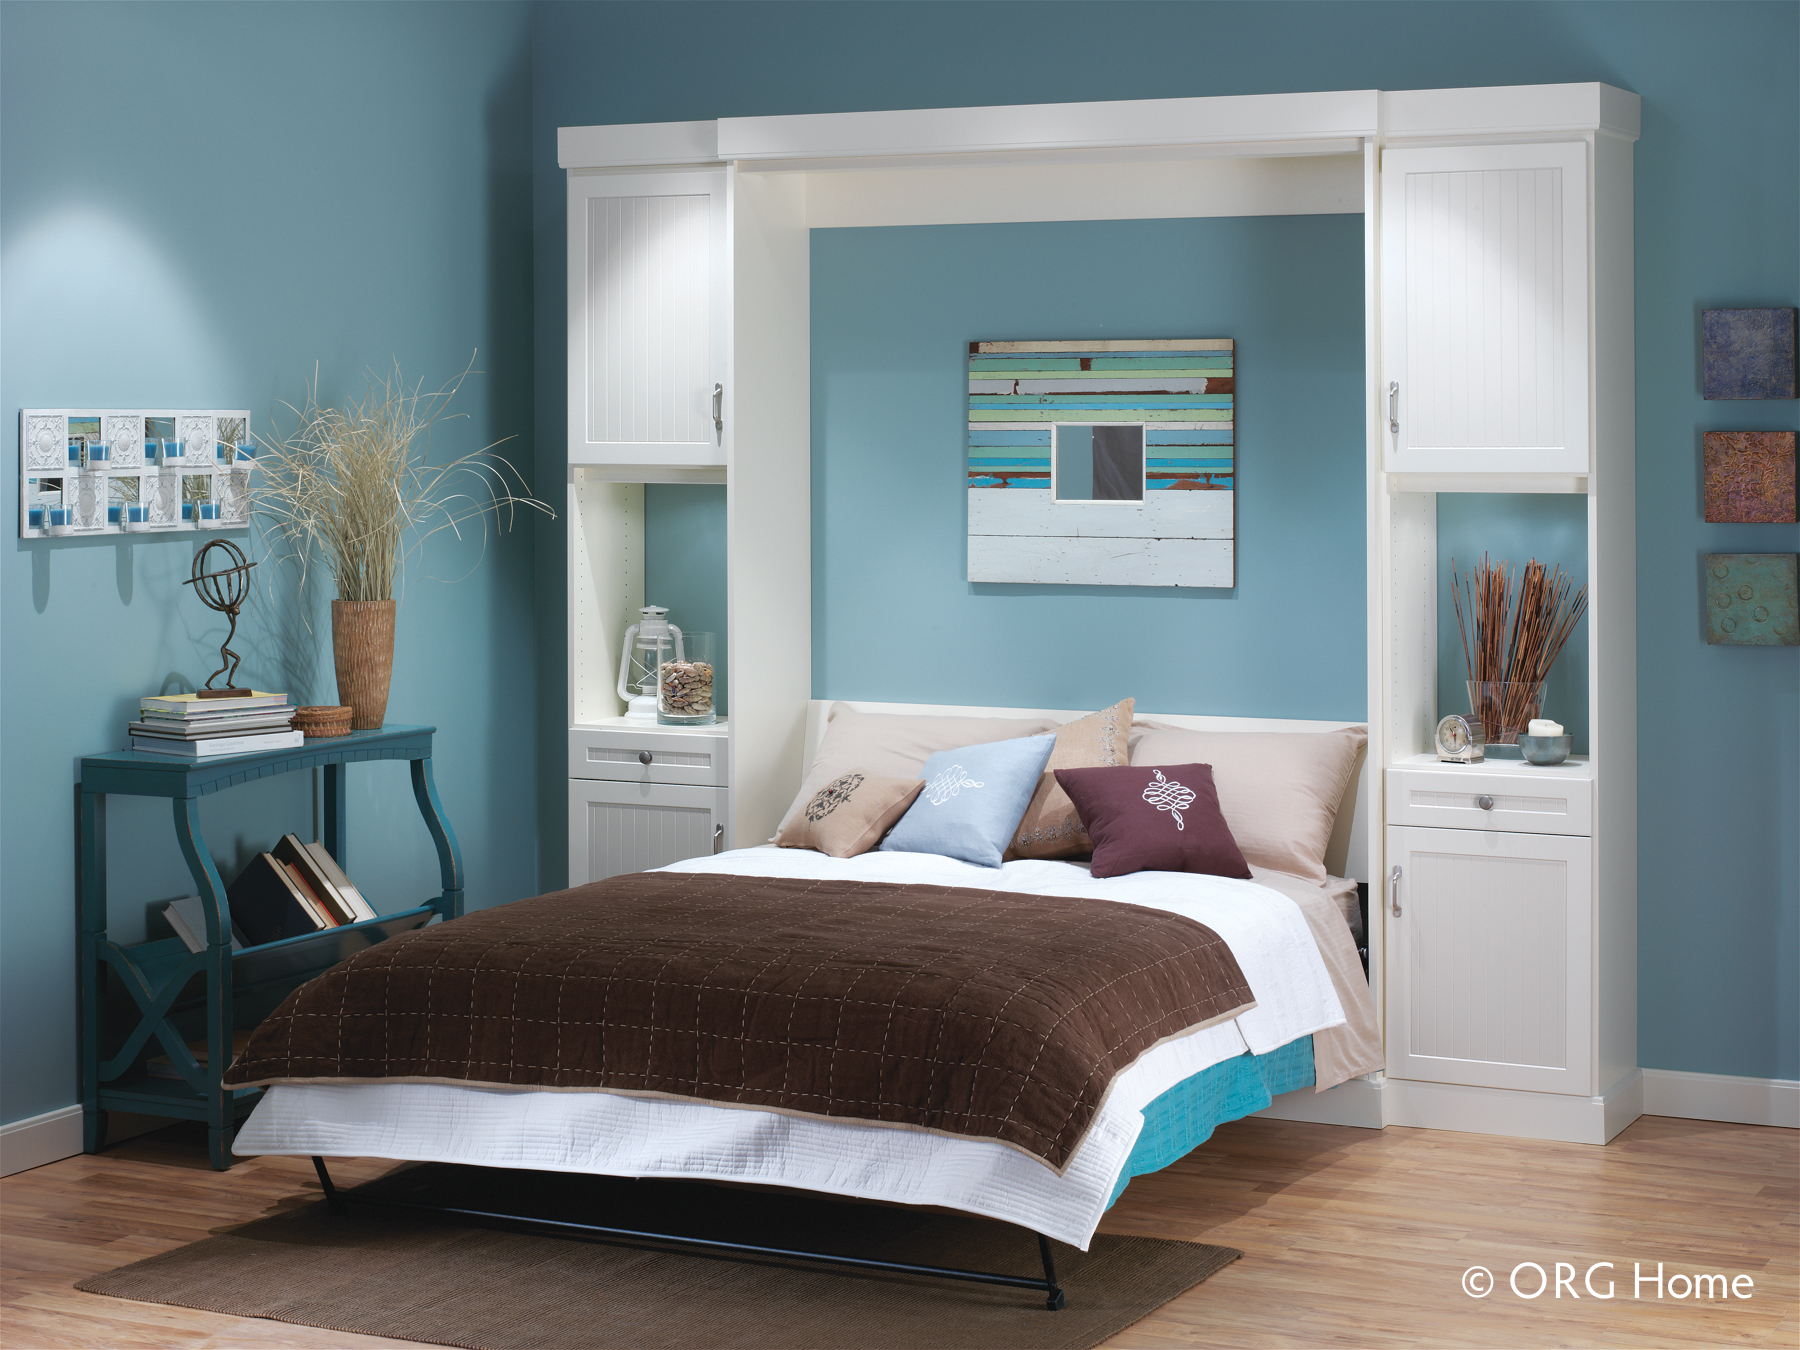 Bedroom Furniture San Francisco 10 Reasons To Own A Murphy Bed By Fred Kumpel Sponsored